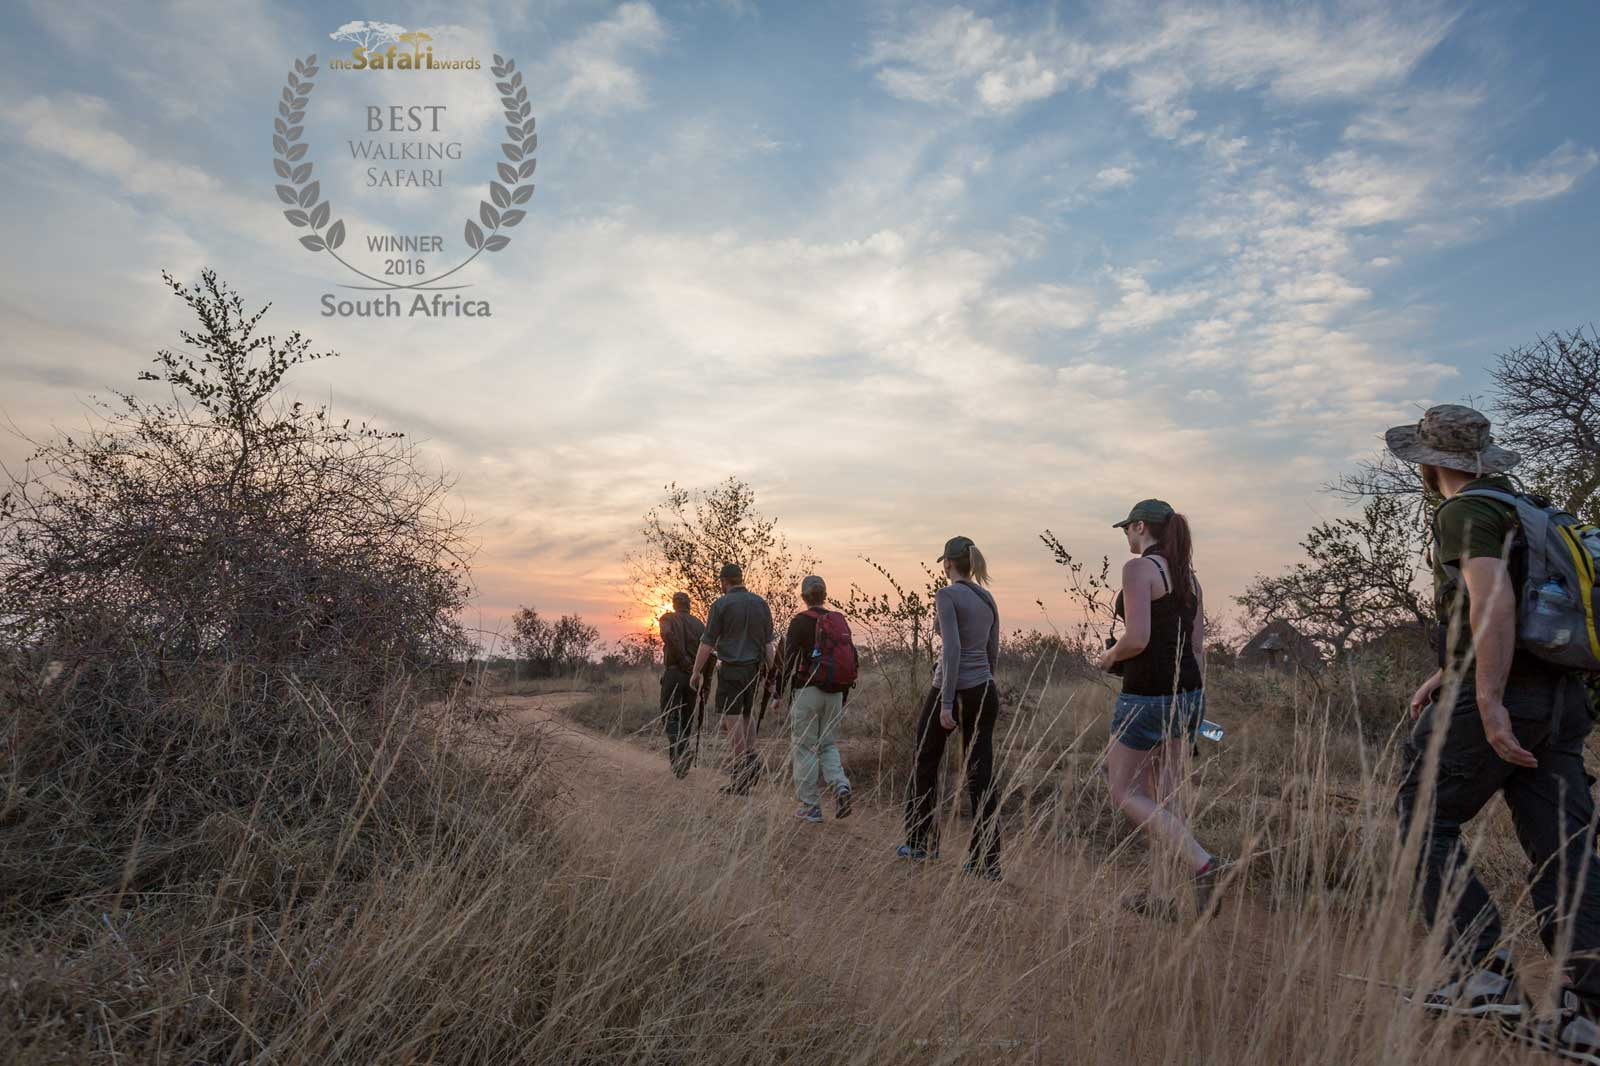 Africa on Foot Winner of Best Walking Safari in 2016